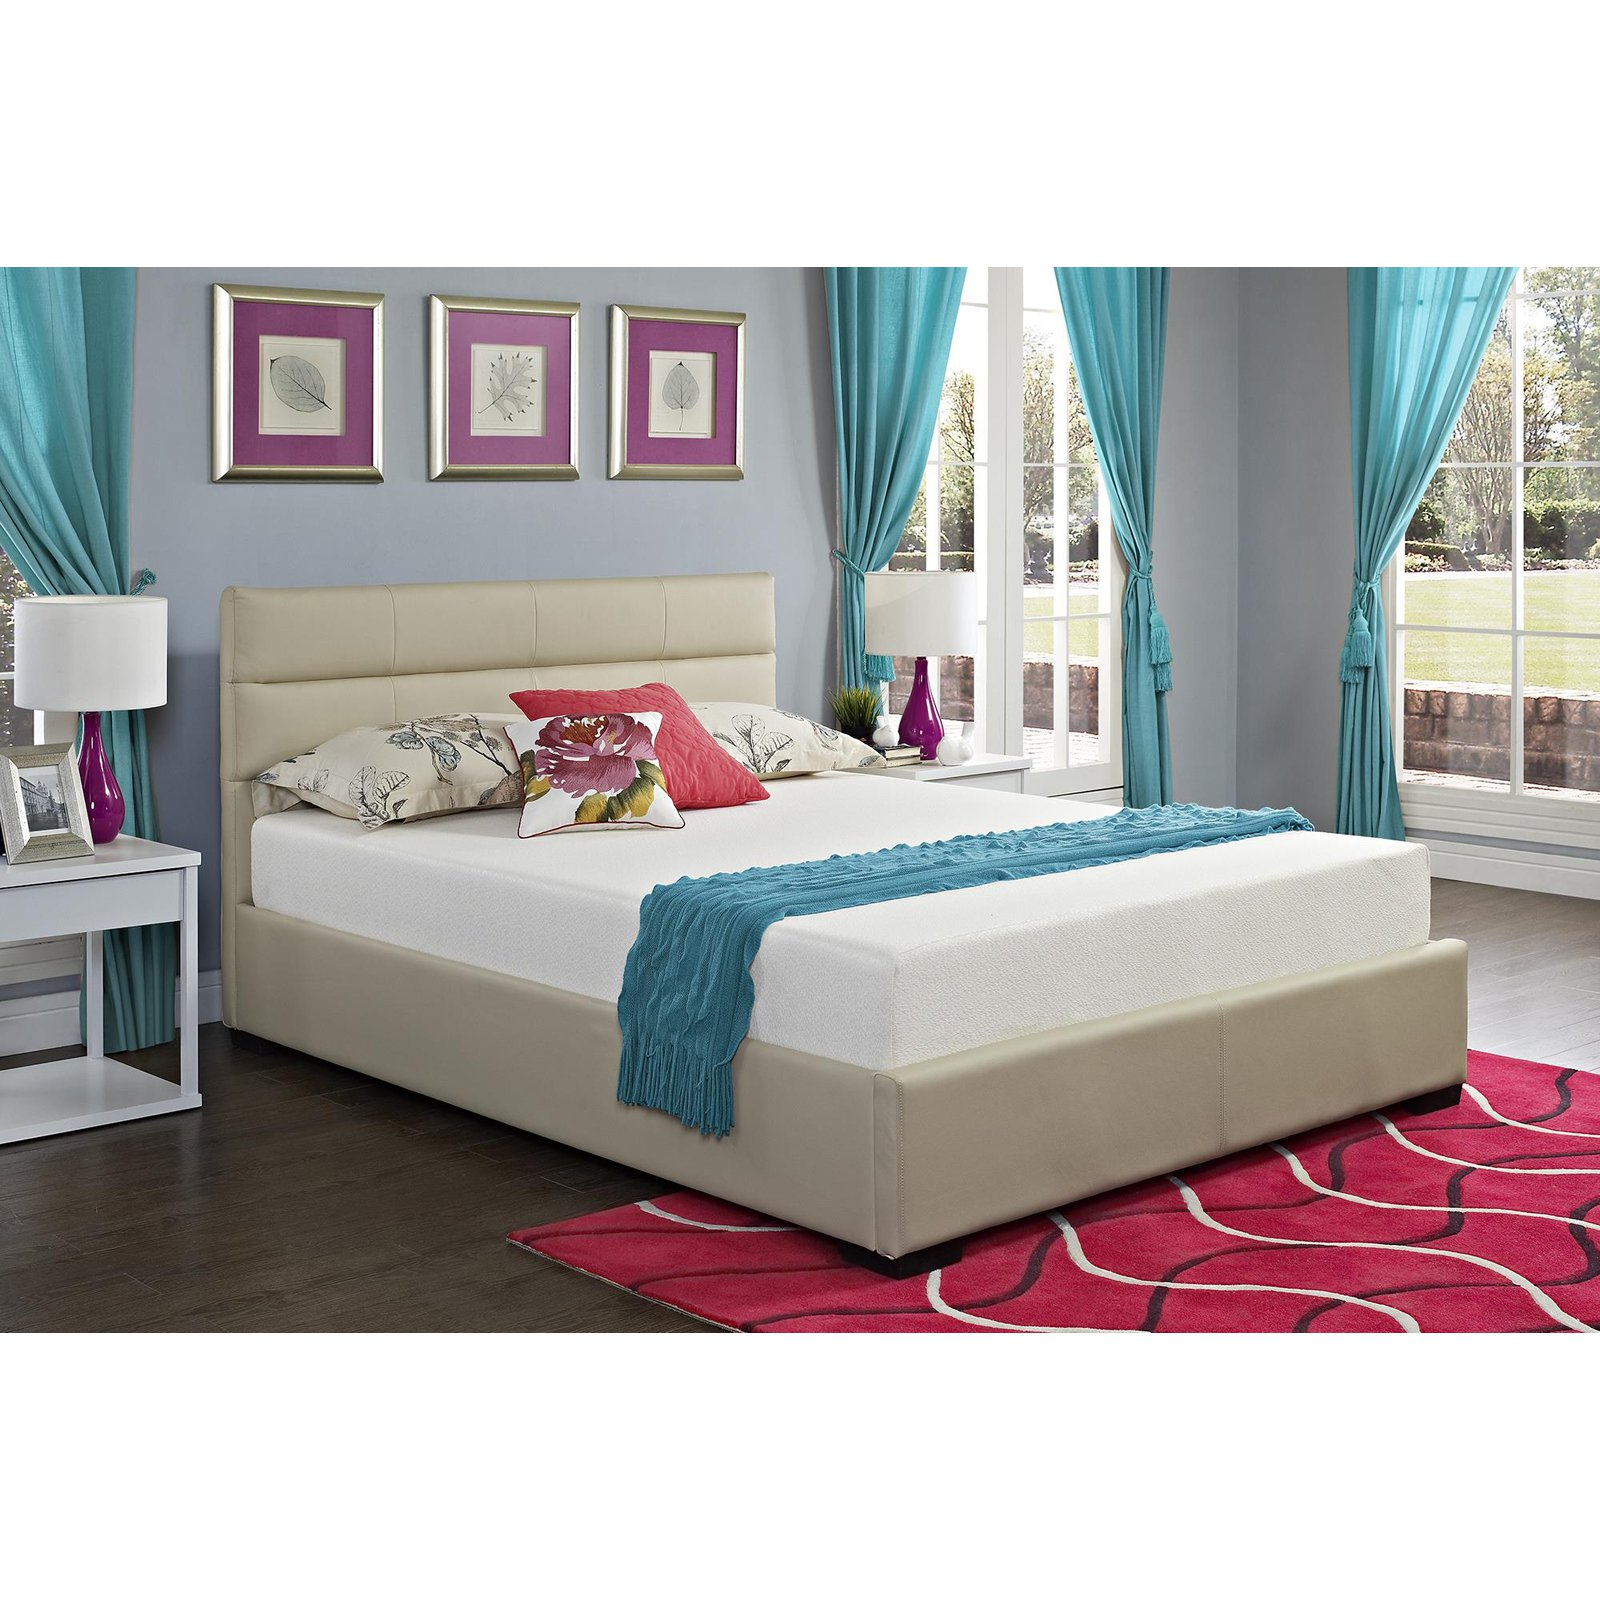 Signature Sleep Silhouette 8 in. Memory Foam Mattress by DHP